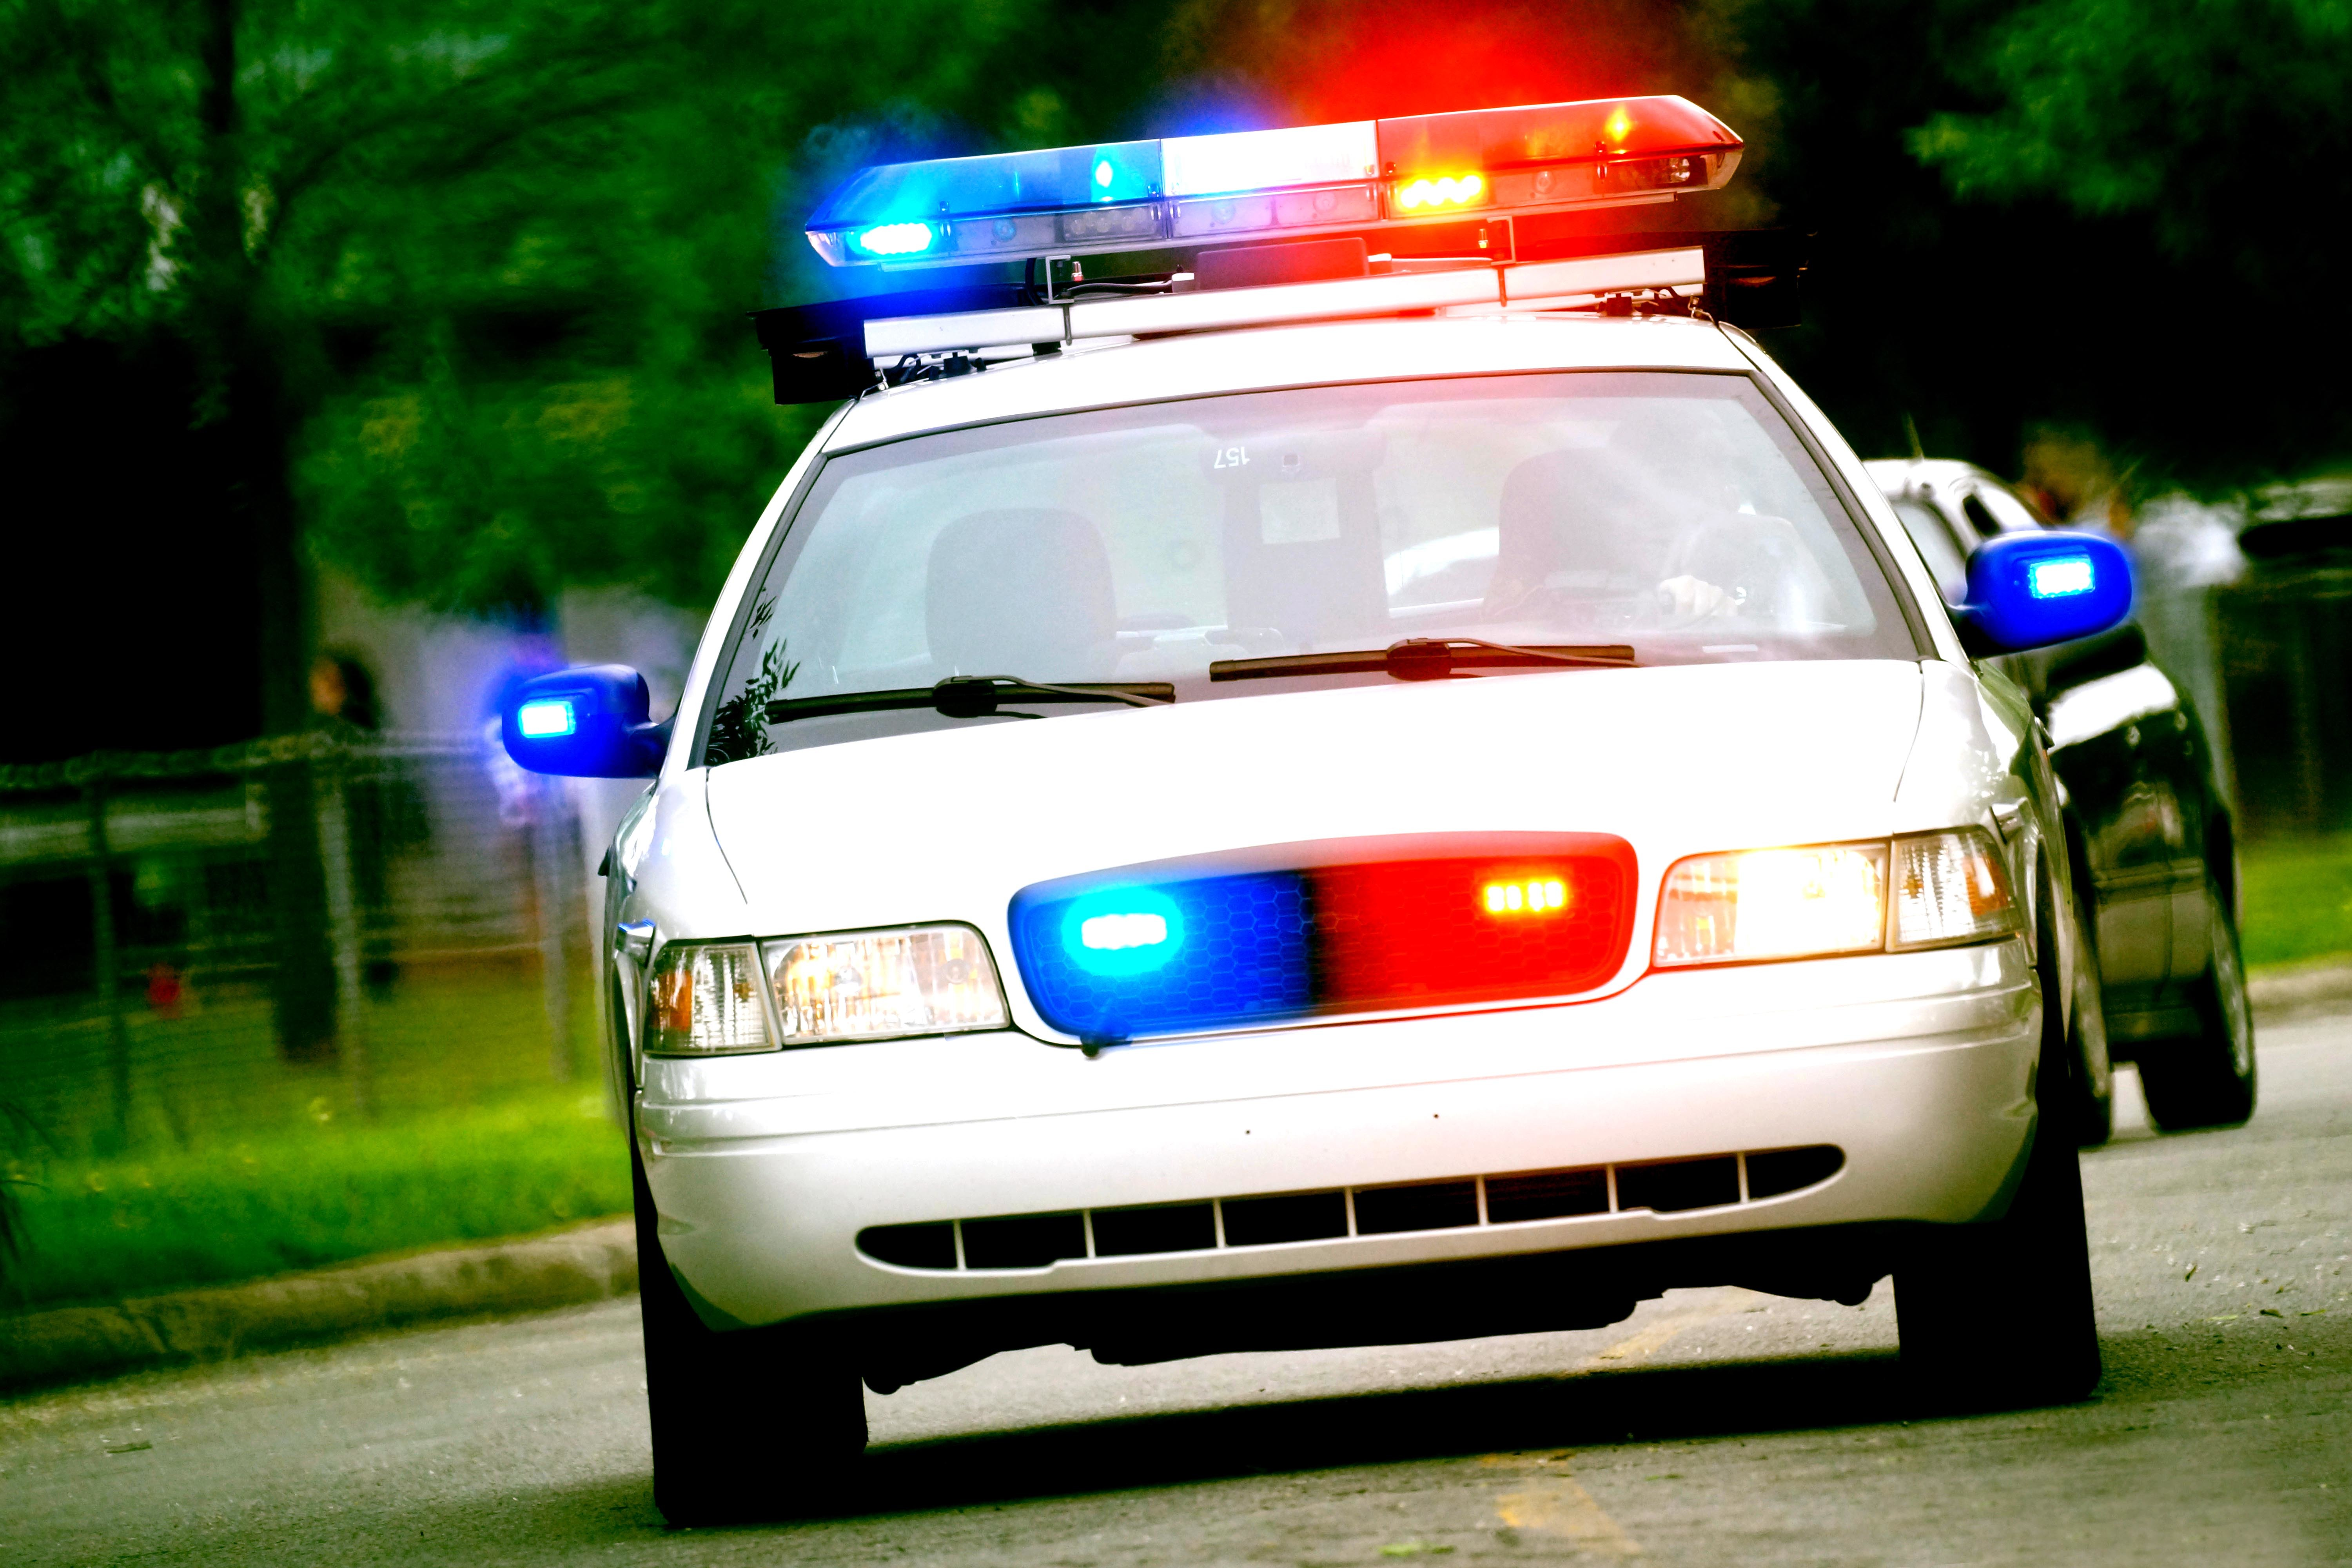 A man died Thursday after being ejected from a vehicle during a collision between two trucks in Springville.